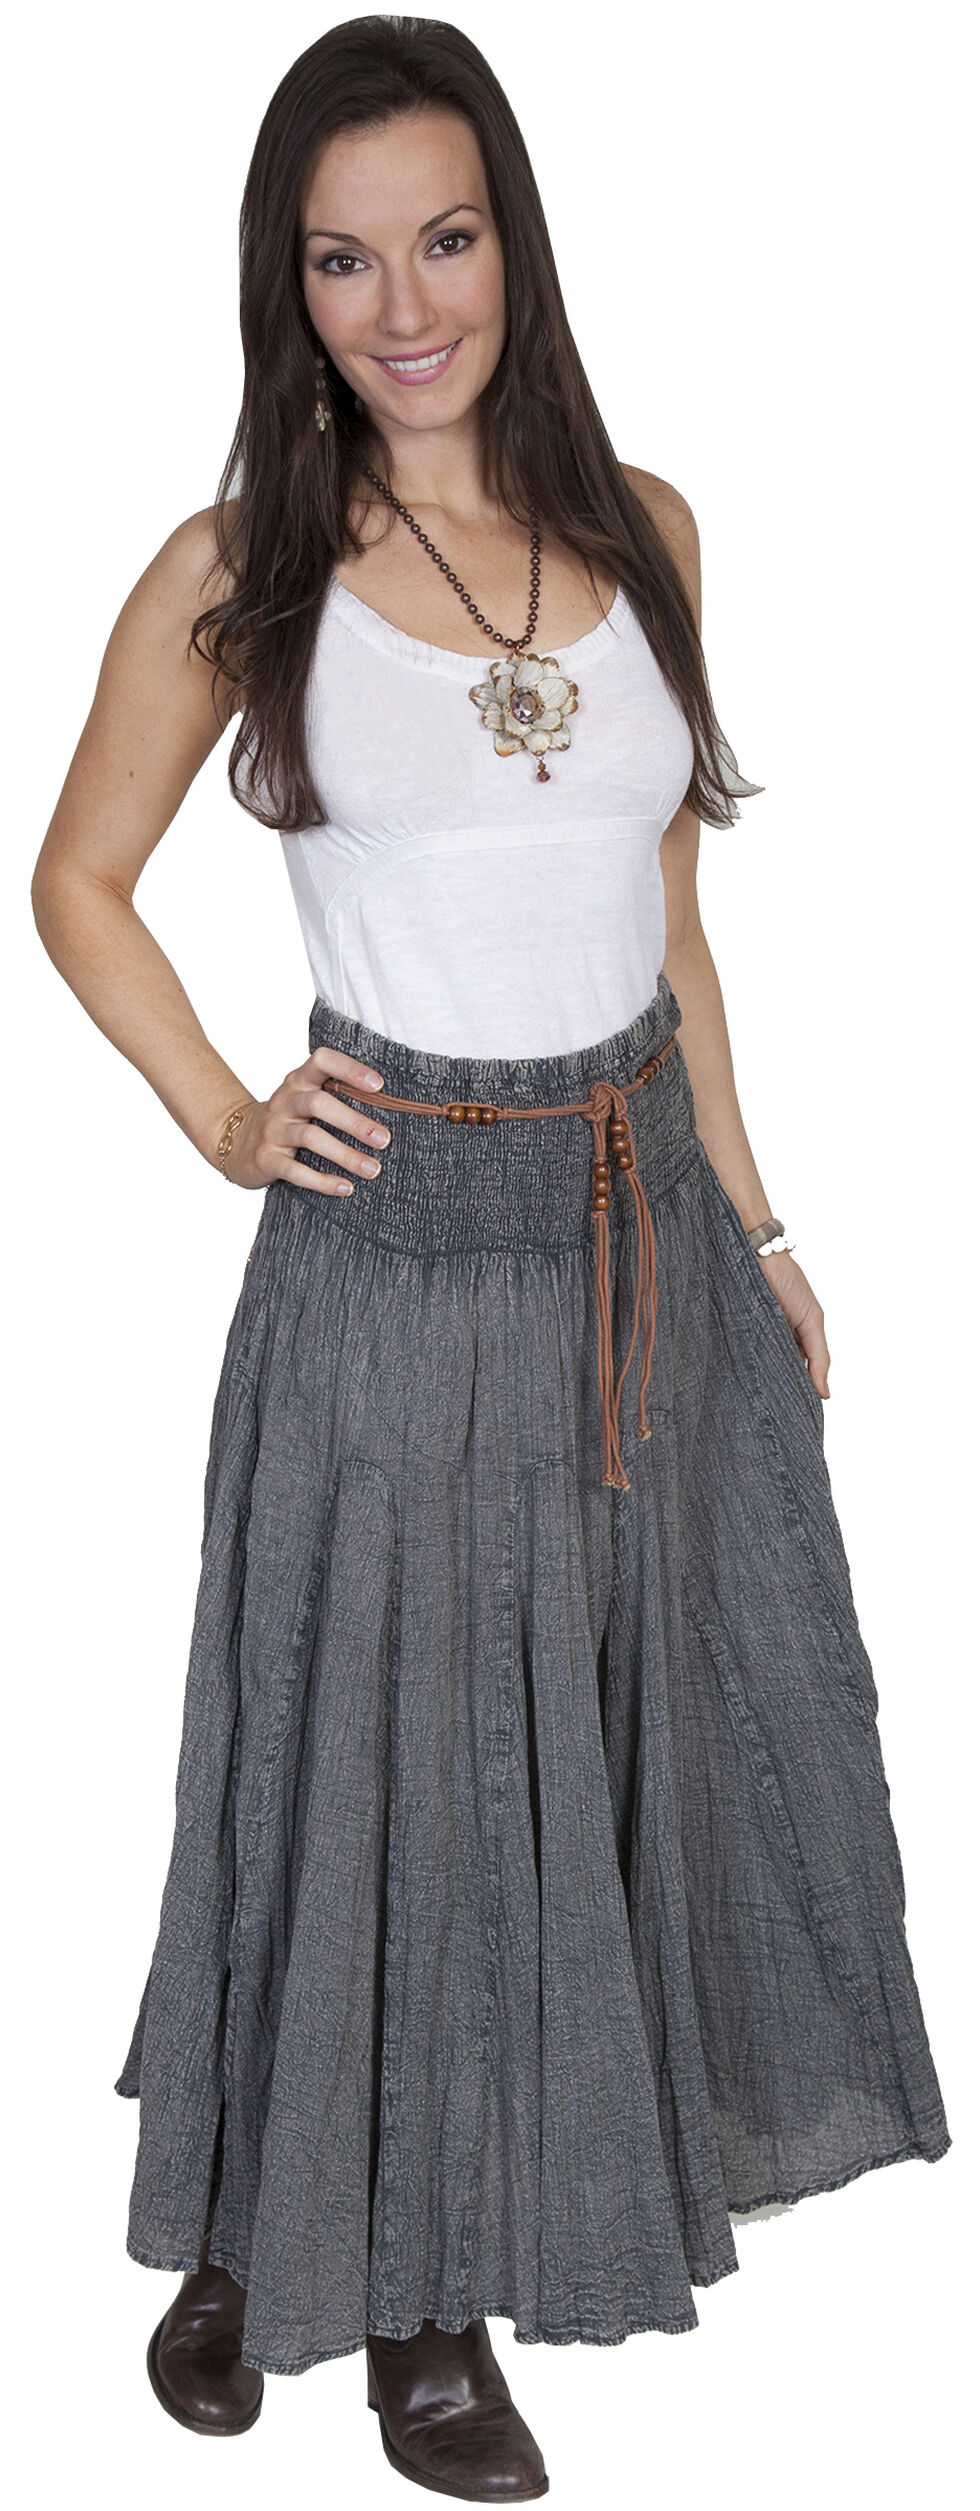 Scully Cantina Collection Full Length Skirt, Charcoal Grey, hi-res